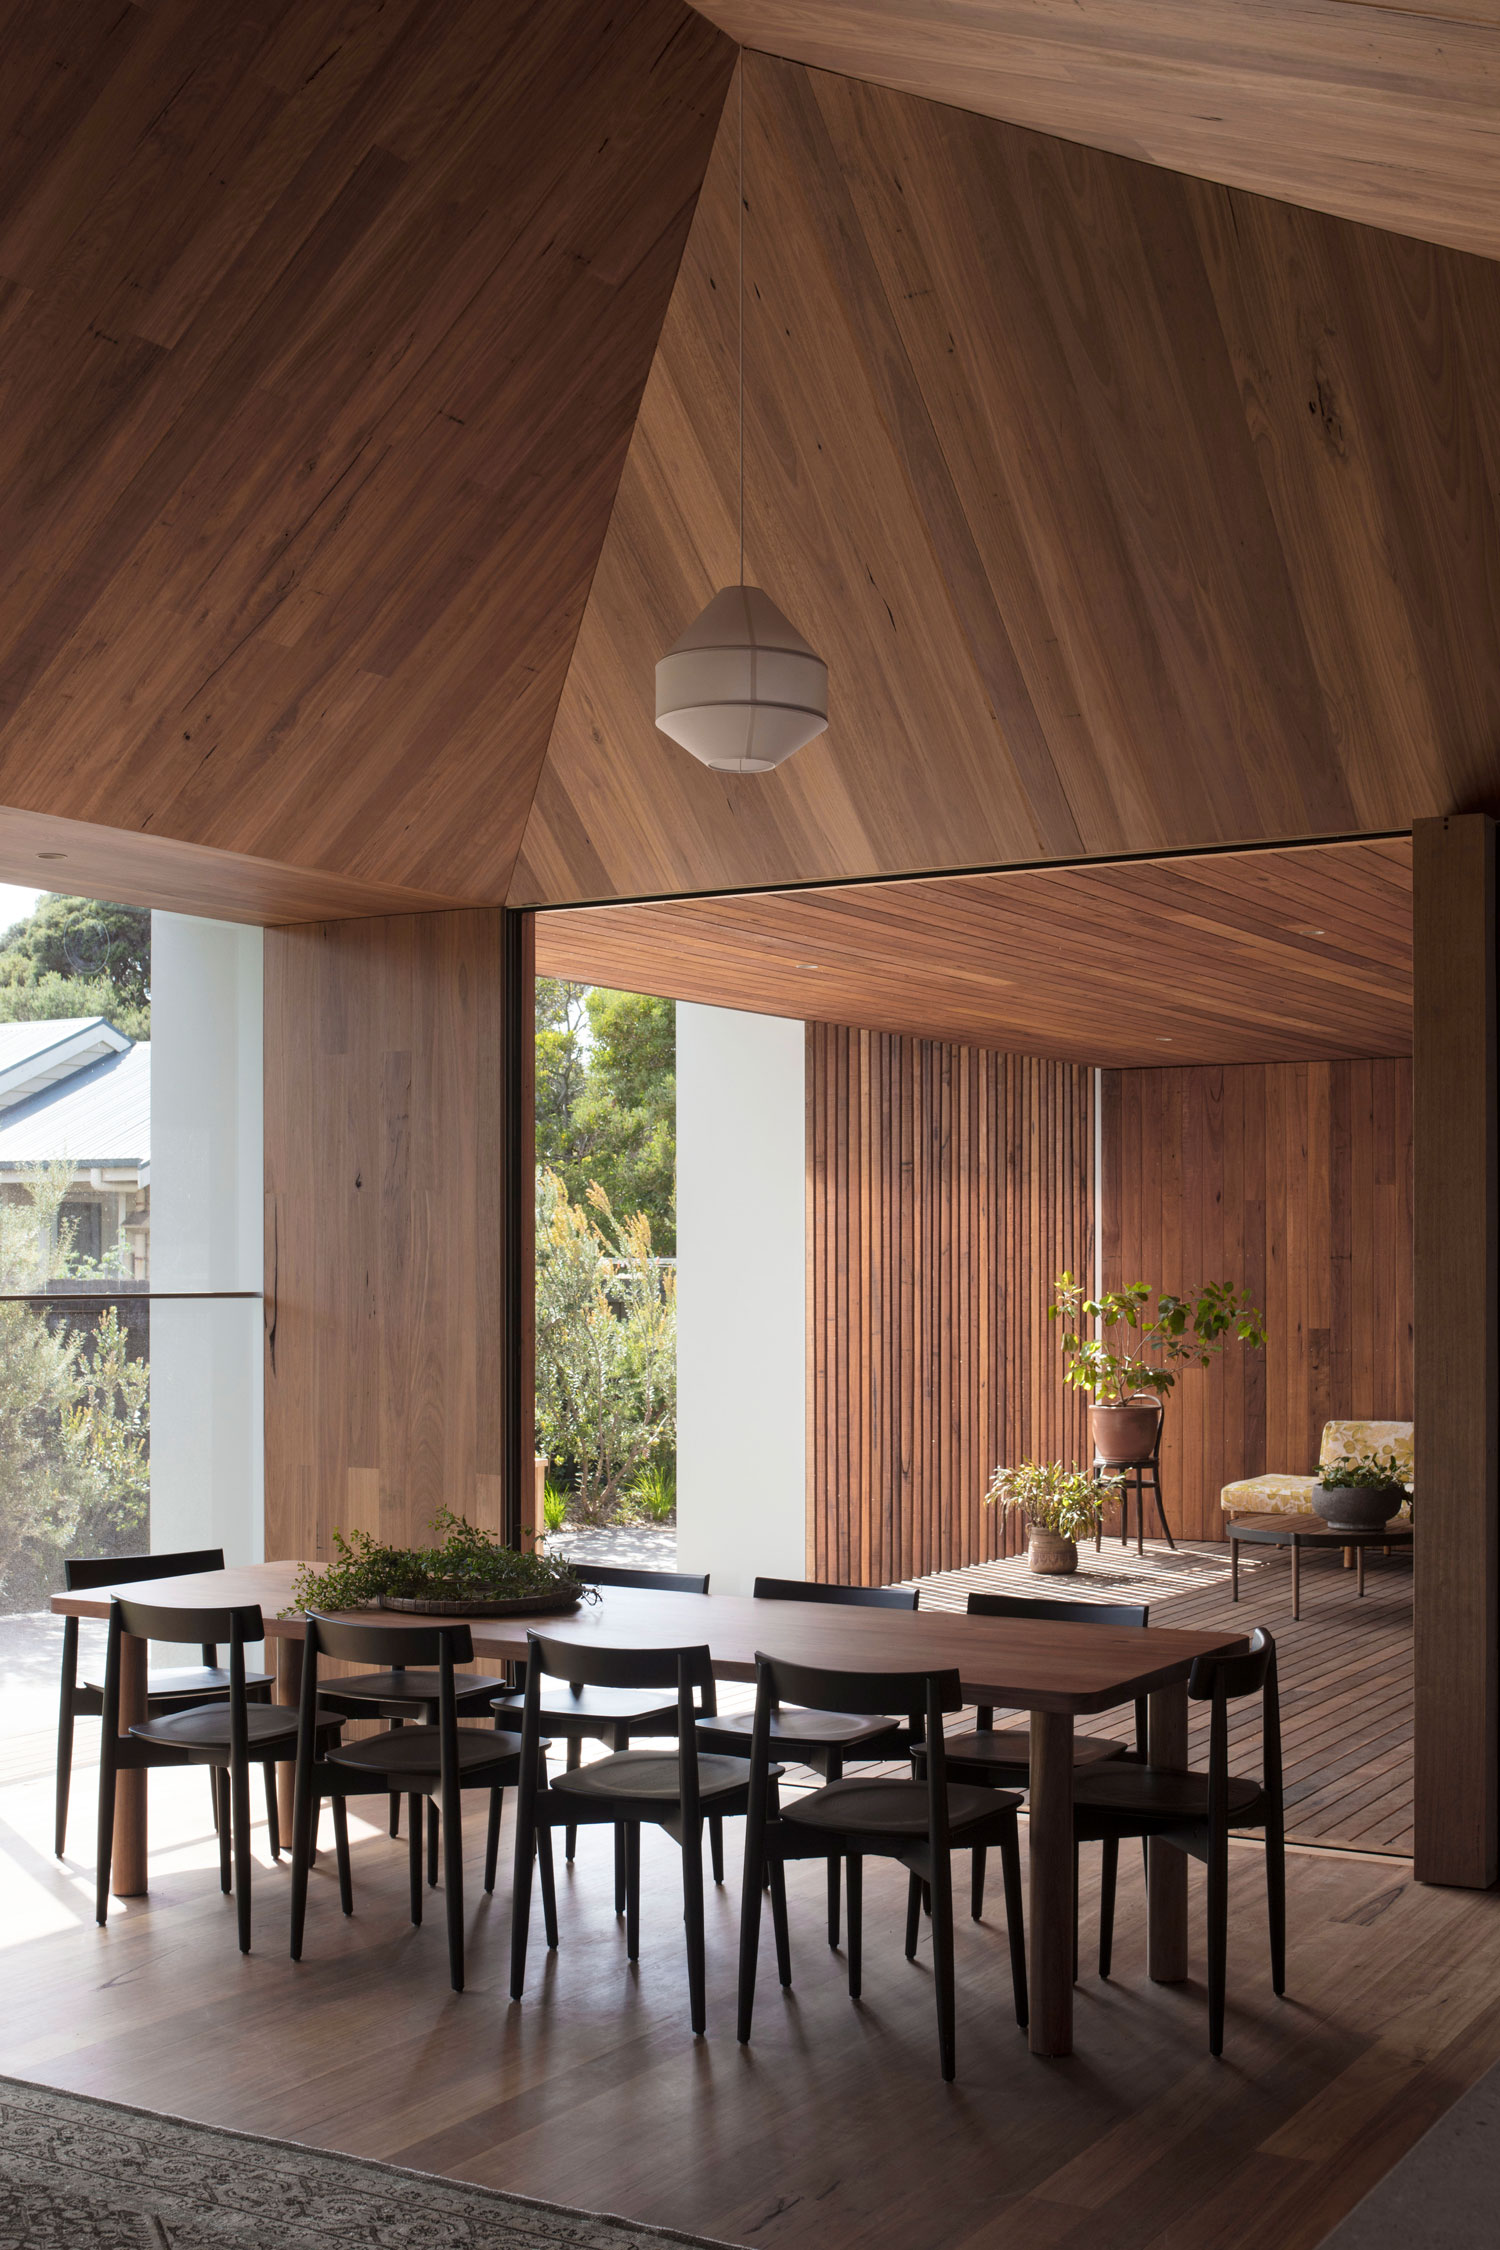 Point Lonsdale Is Located Along A Plentiful Coastal Frontage In Victoria's Bellarine Peninsula